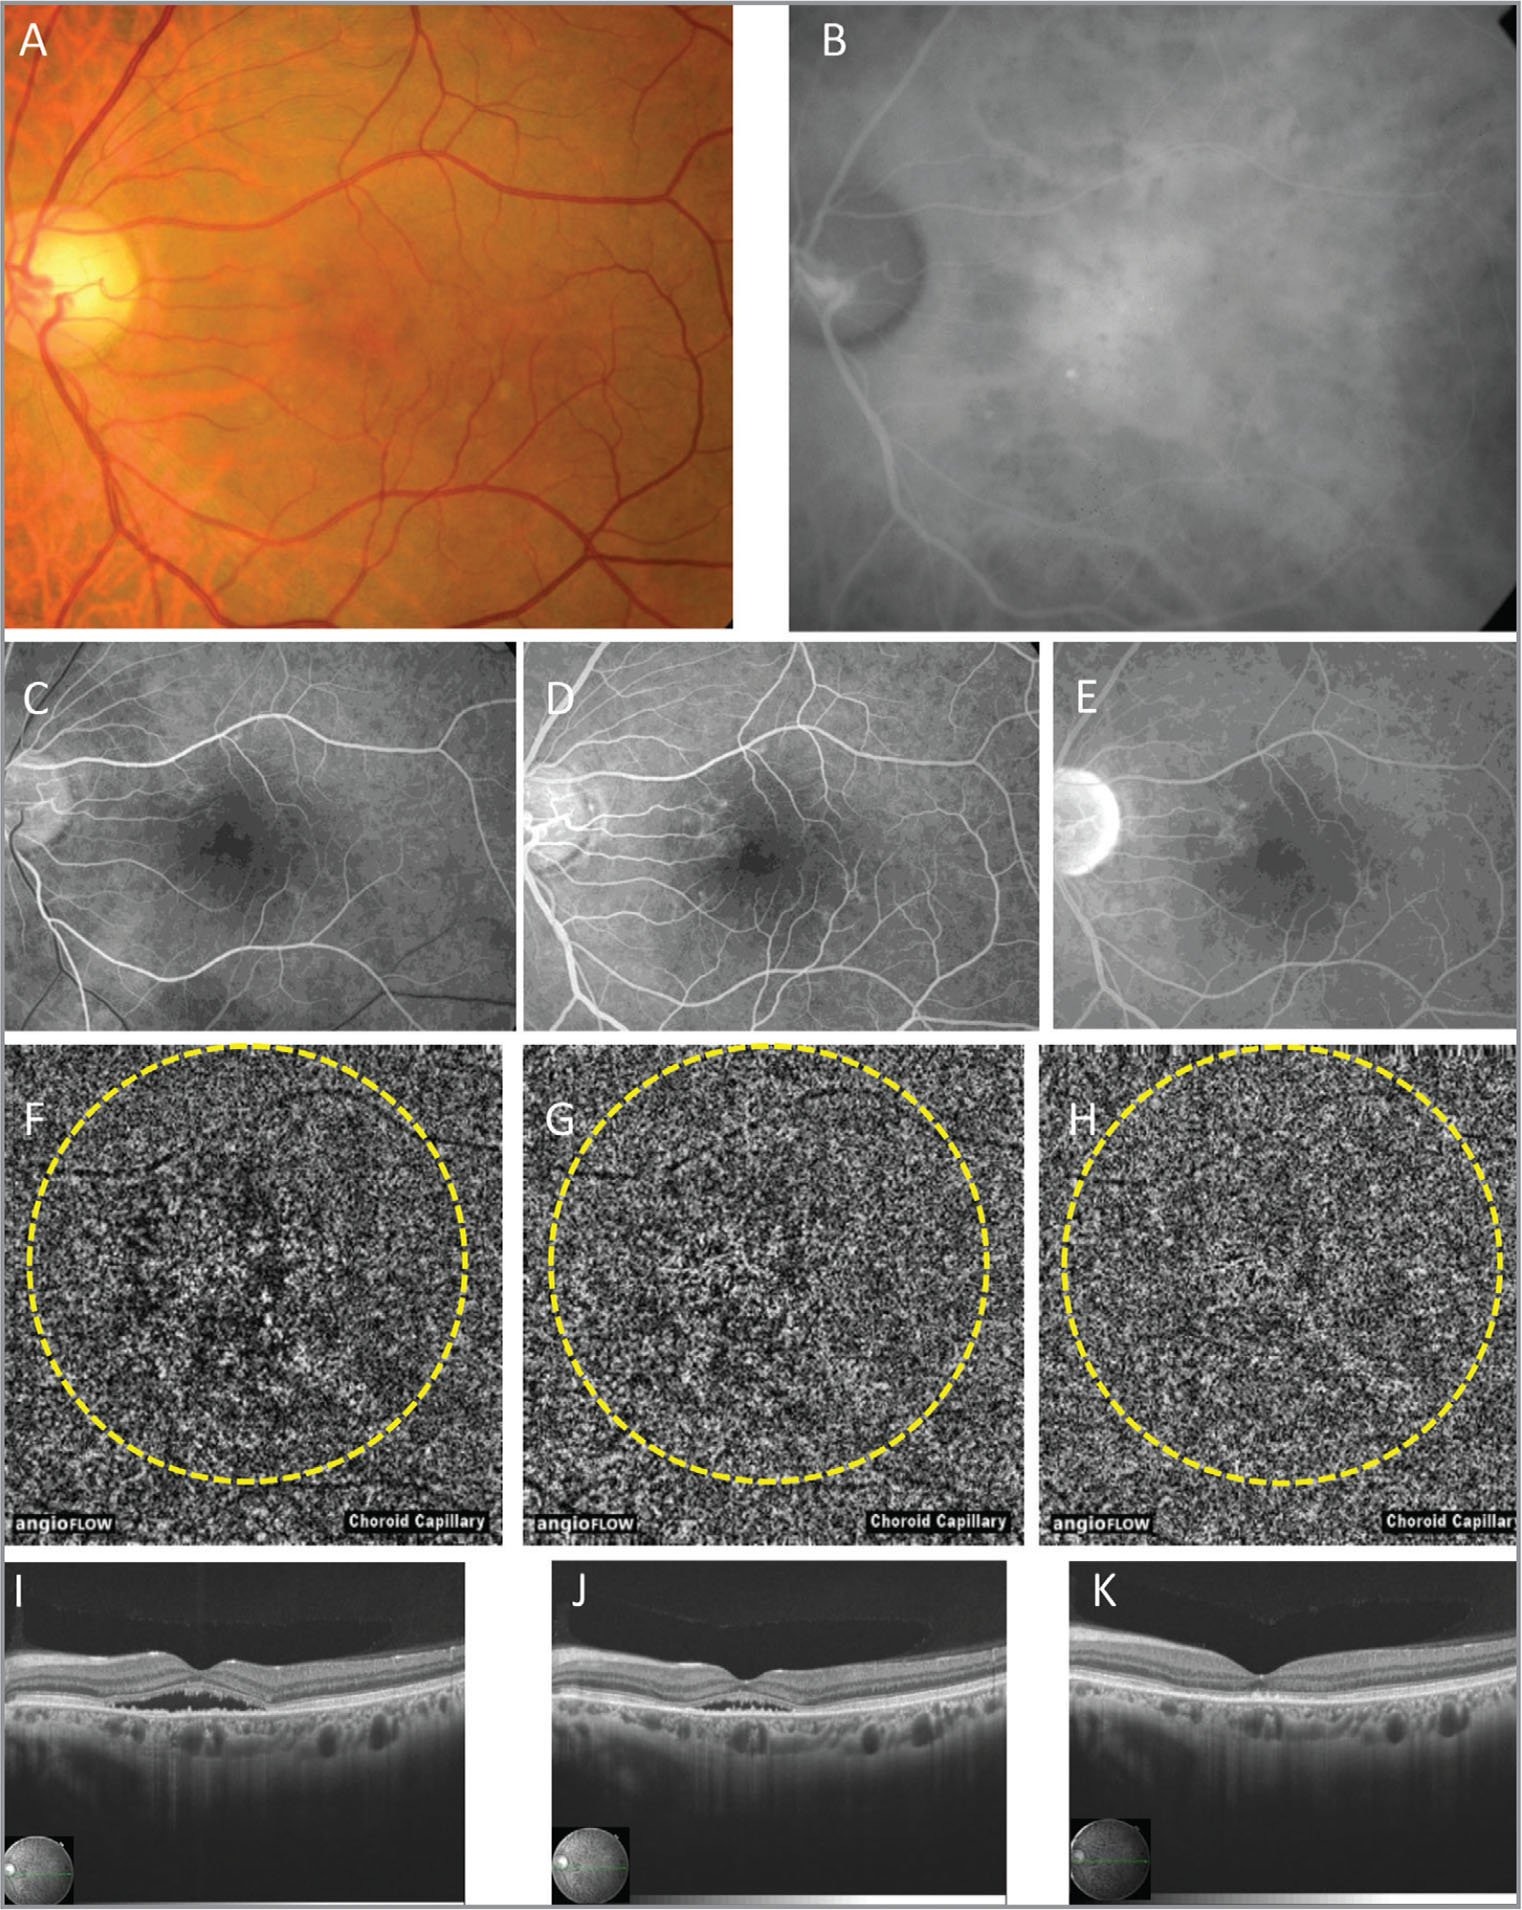 A;Multimodal imaging of the left eye of Case 6. (A) Color fundus photograph. (B) Middle phase of indocyanine green angiography. (C–E) Fluorescein angiography in the early to middle phase (C), middle phase (D), and late phase (E). (F–H) Optical coherence tomography angiography (OCTA) before photodynamic therapy (PDT) (F), 1 week after PDT (G), and 1 month after PDT (H). The PDT spot area is encircled by yellow dots. Before PDT, focal high-intensity lesion indicating abnormal choroidal vessels and flow void lesion at the choriocapillaris layer are observed (F). These findings decrease progressively at 1 week and 1 month after PDT (G, H). (I–K) OCT before PDT (I), 1 week after PDT (J), and 1 month after PDT (K).